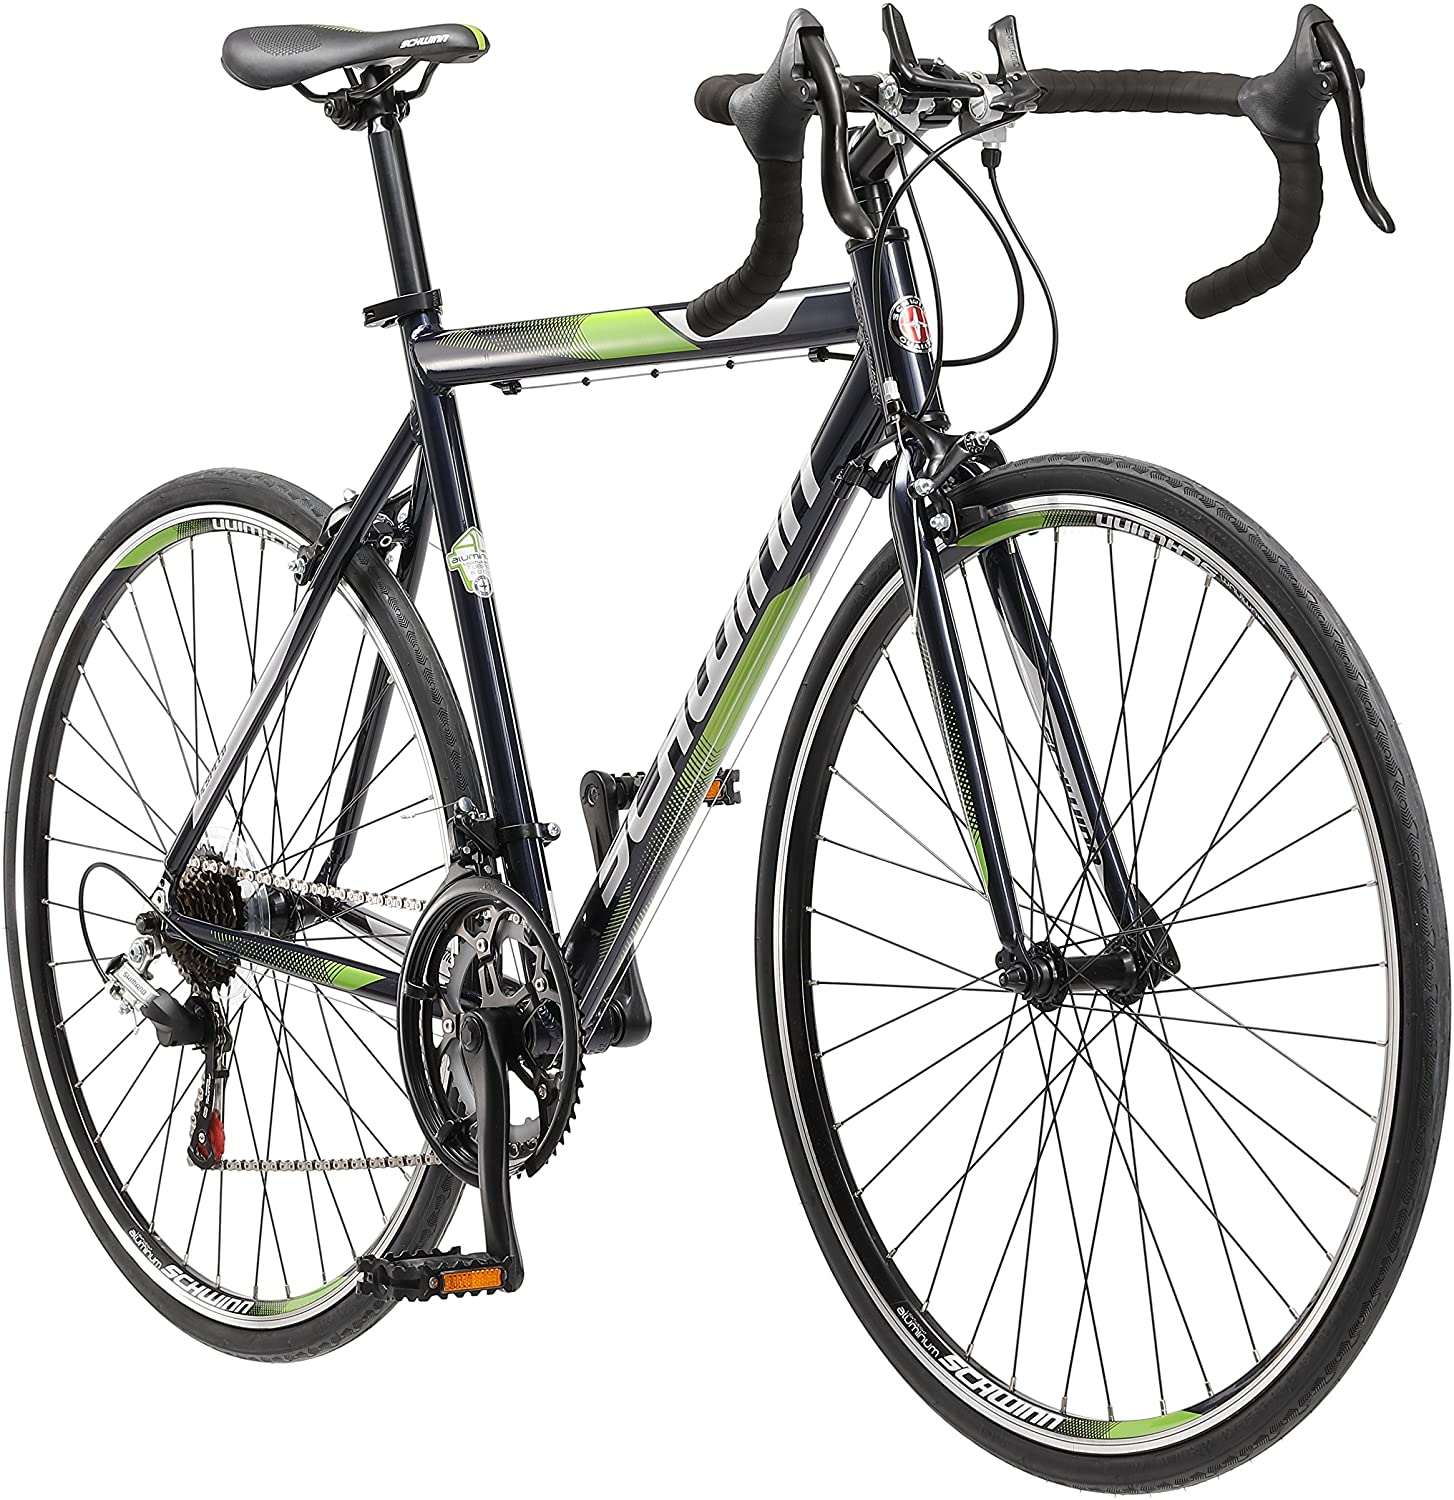 Best road bikes under 2000: Schwinn Volare 1300 Adult Hybrid Road Bike